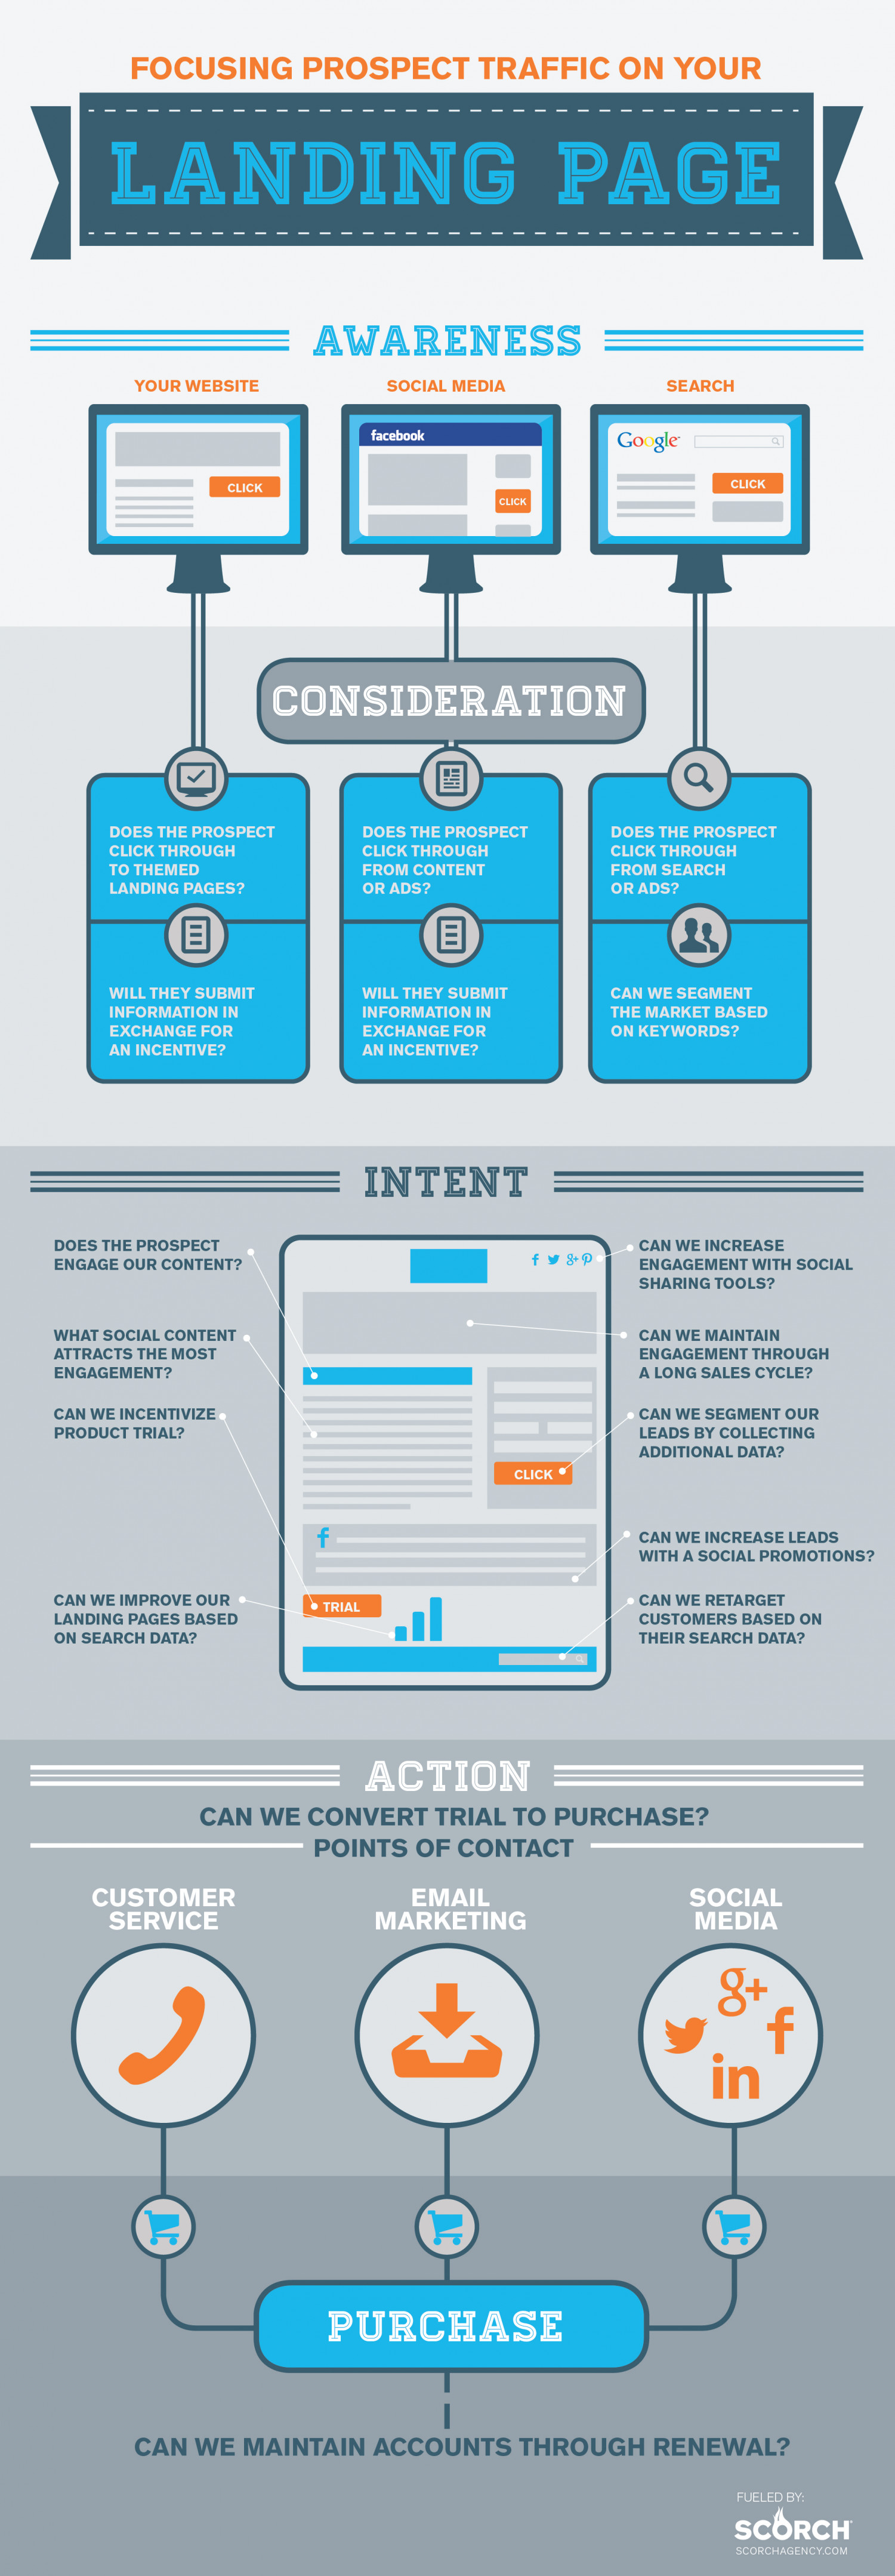 Focusing Prospect Traffic To Landing Pages Infographic